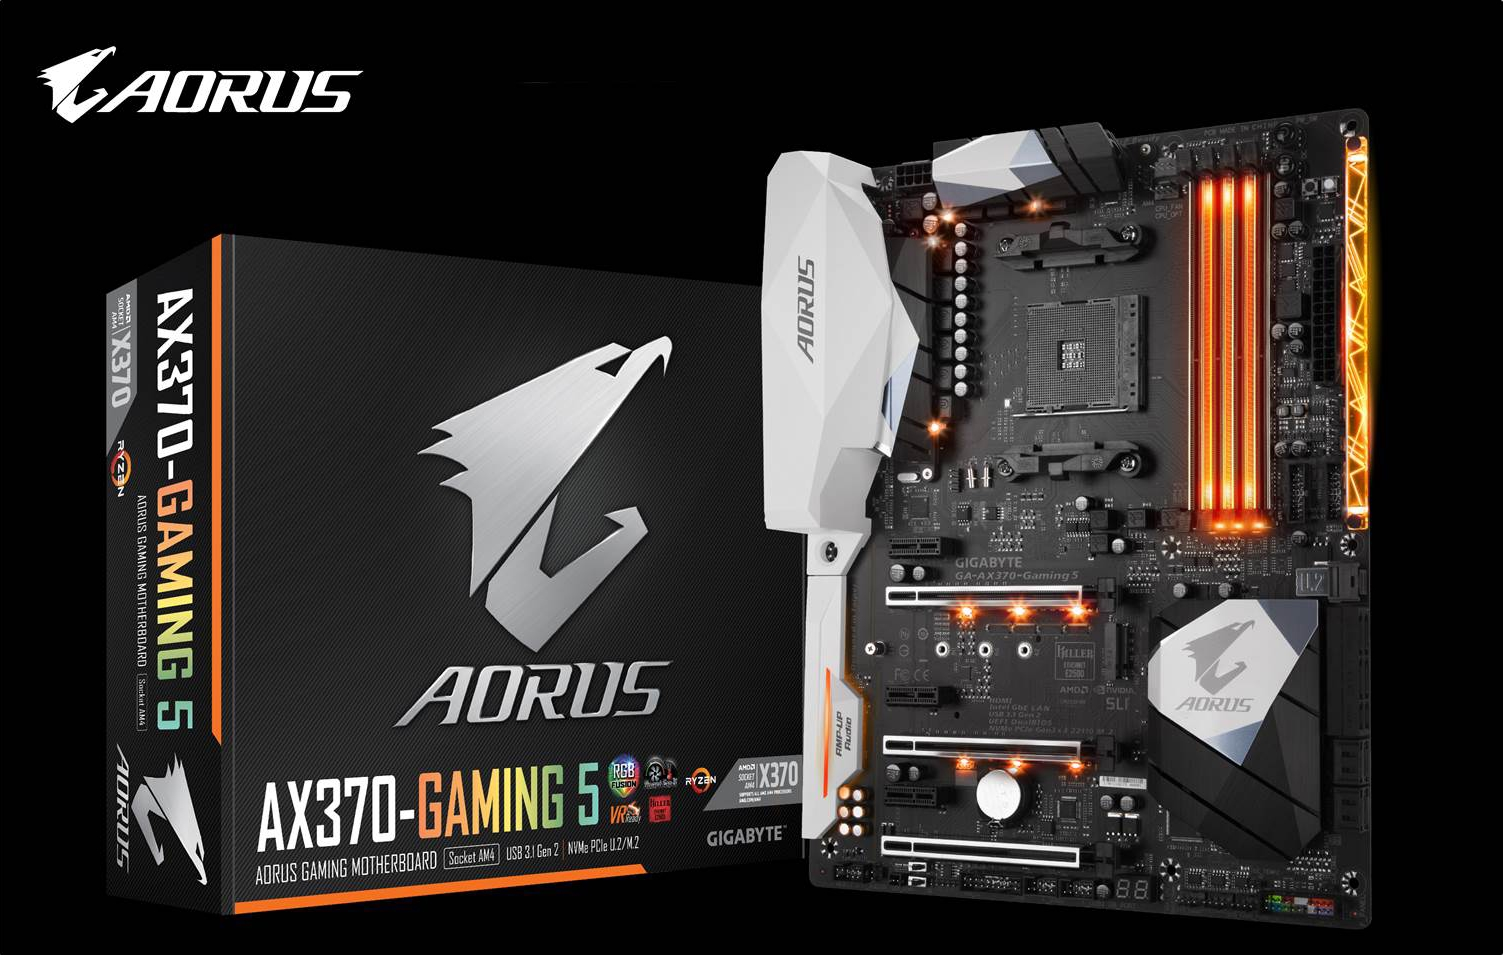 The Ideal Match for Ryzen 7 - AORUS AX370-Gaming 5